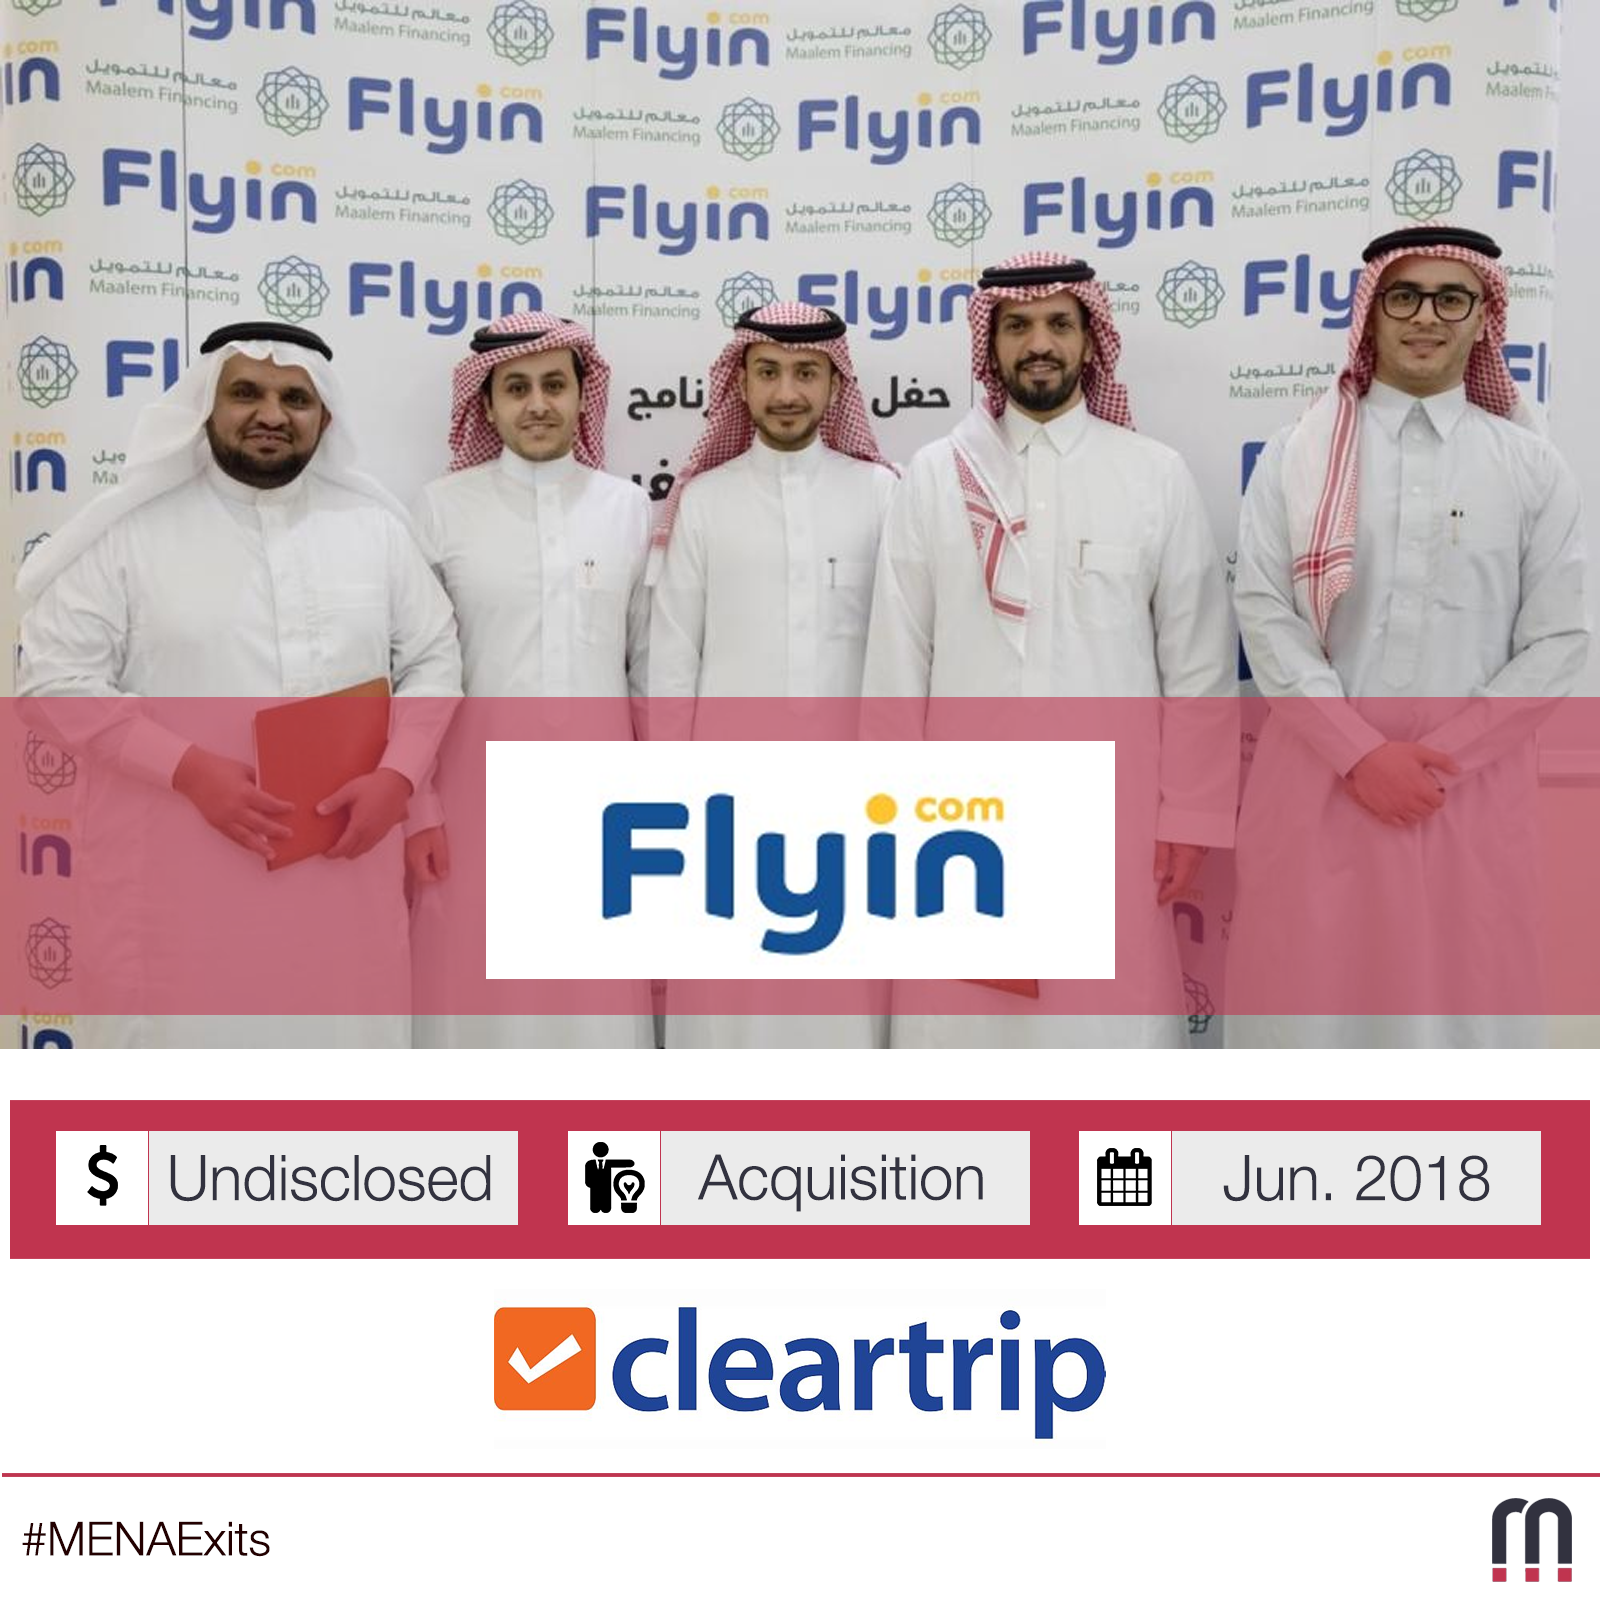 Cleartrip acquires Saudi Arabia's Flyin